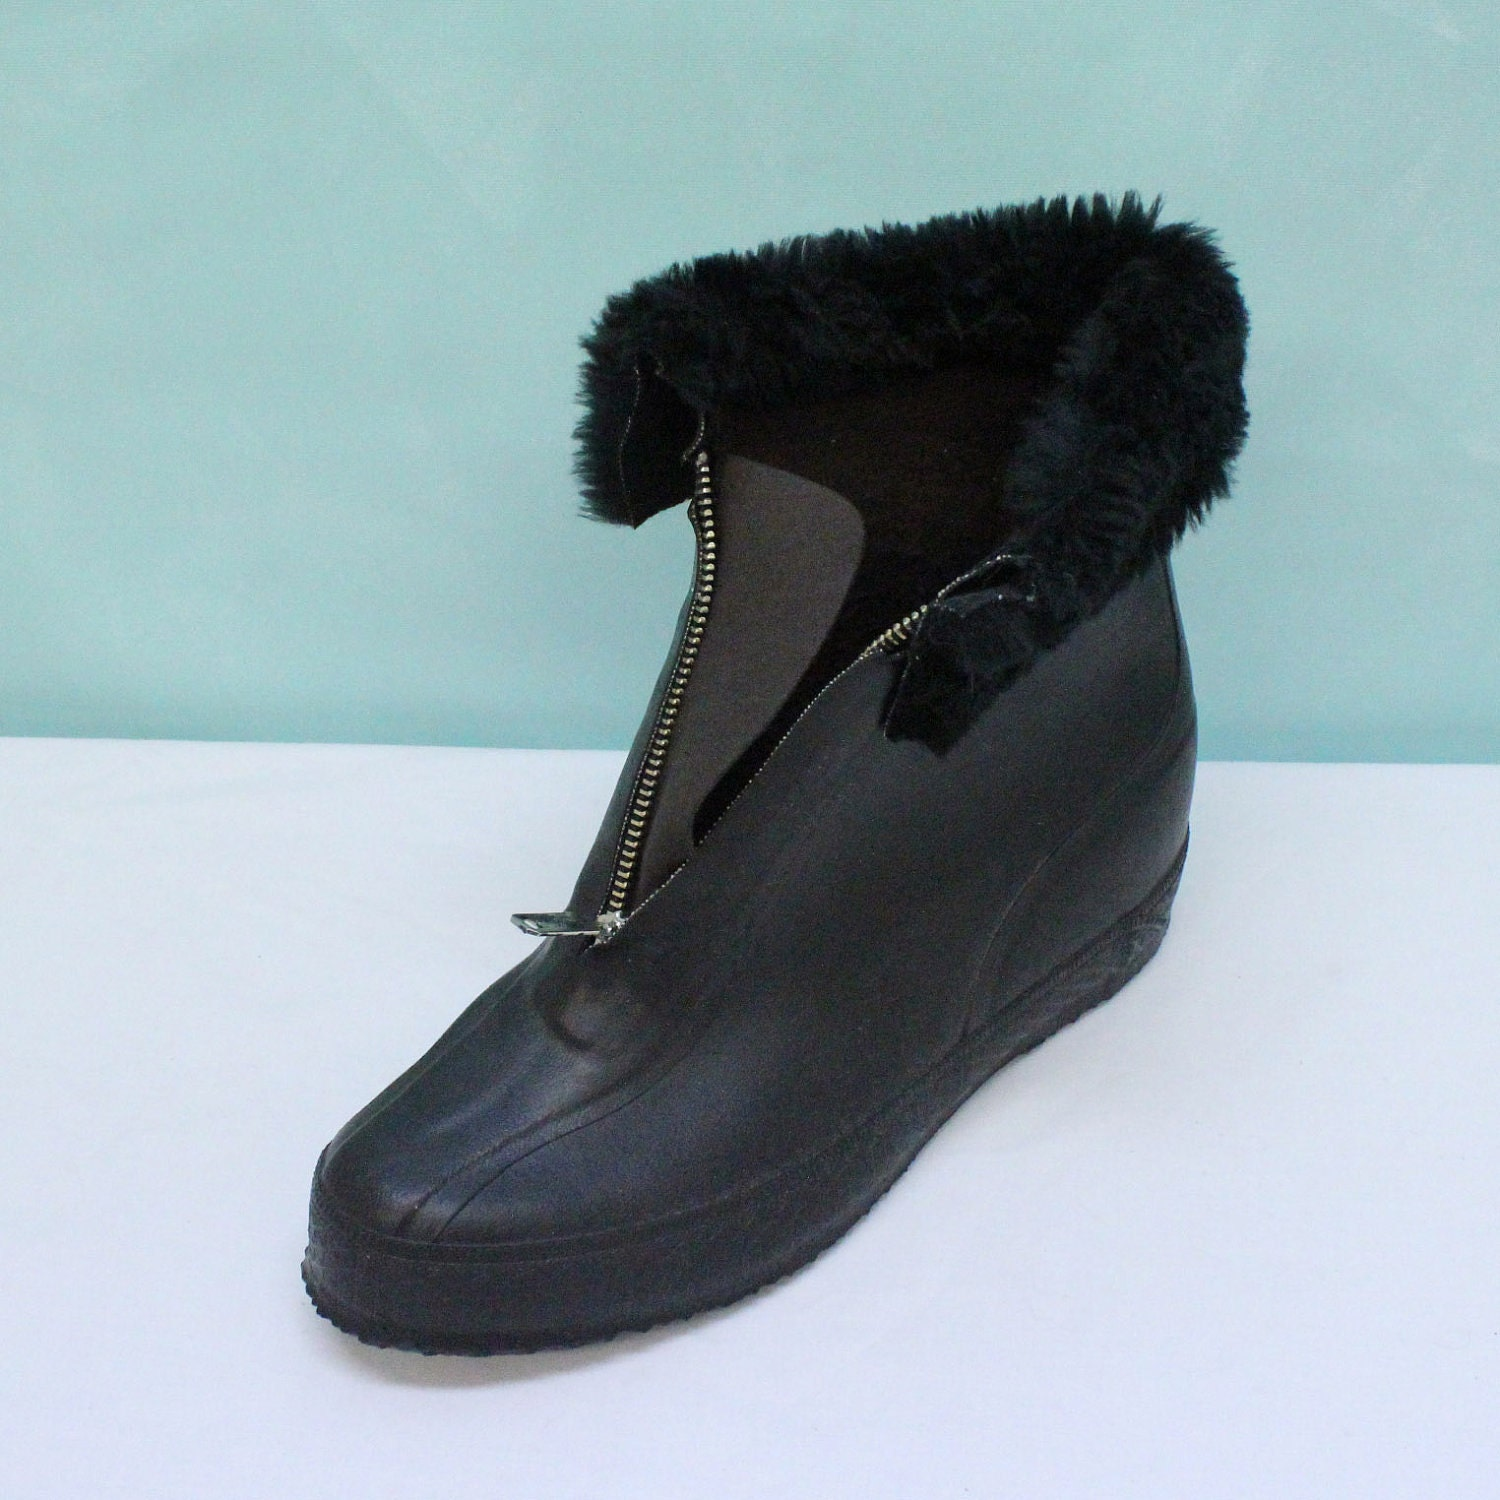 60's Womens Rubber Snow Boots / Galoshes Size 9 New